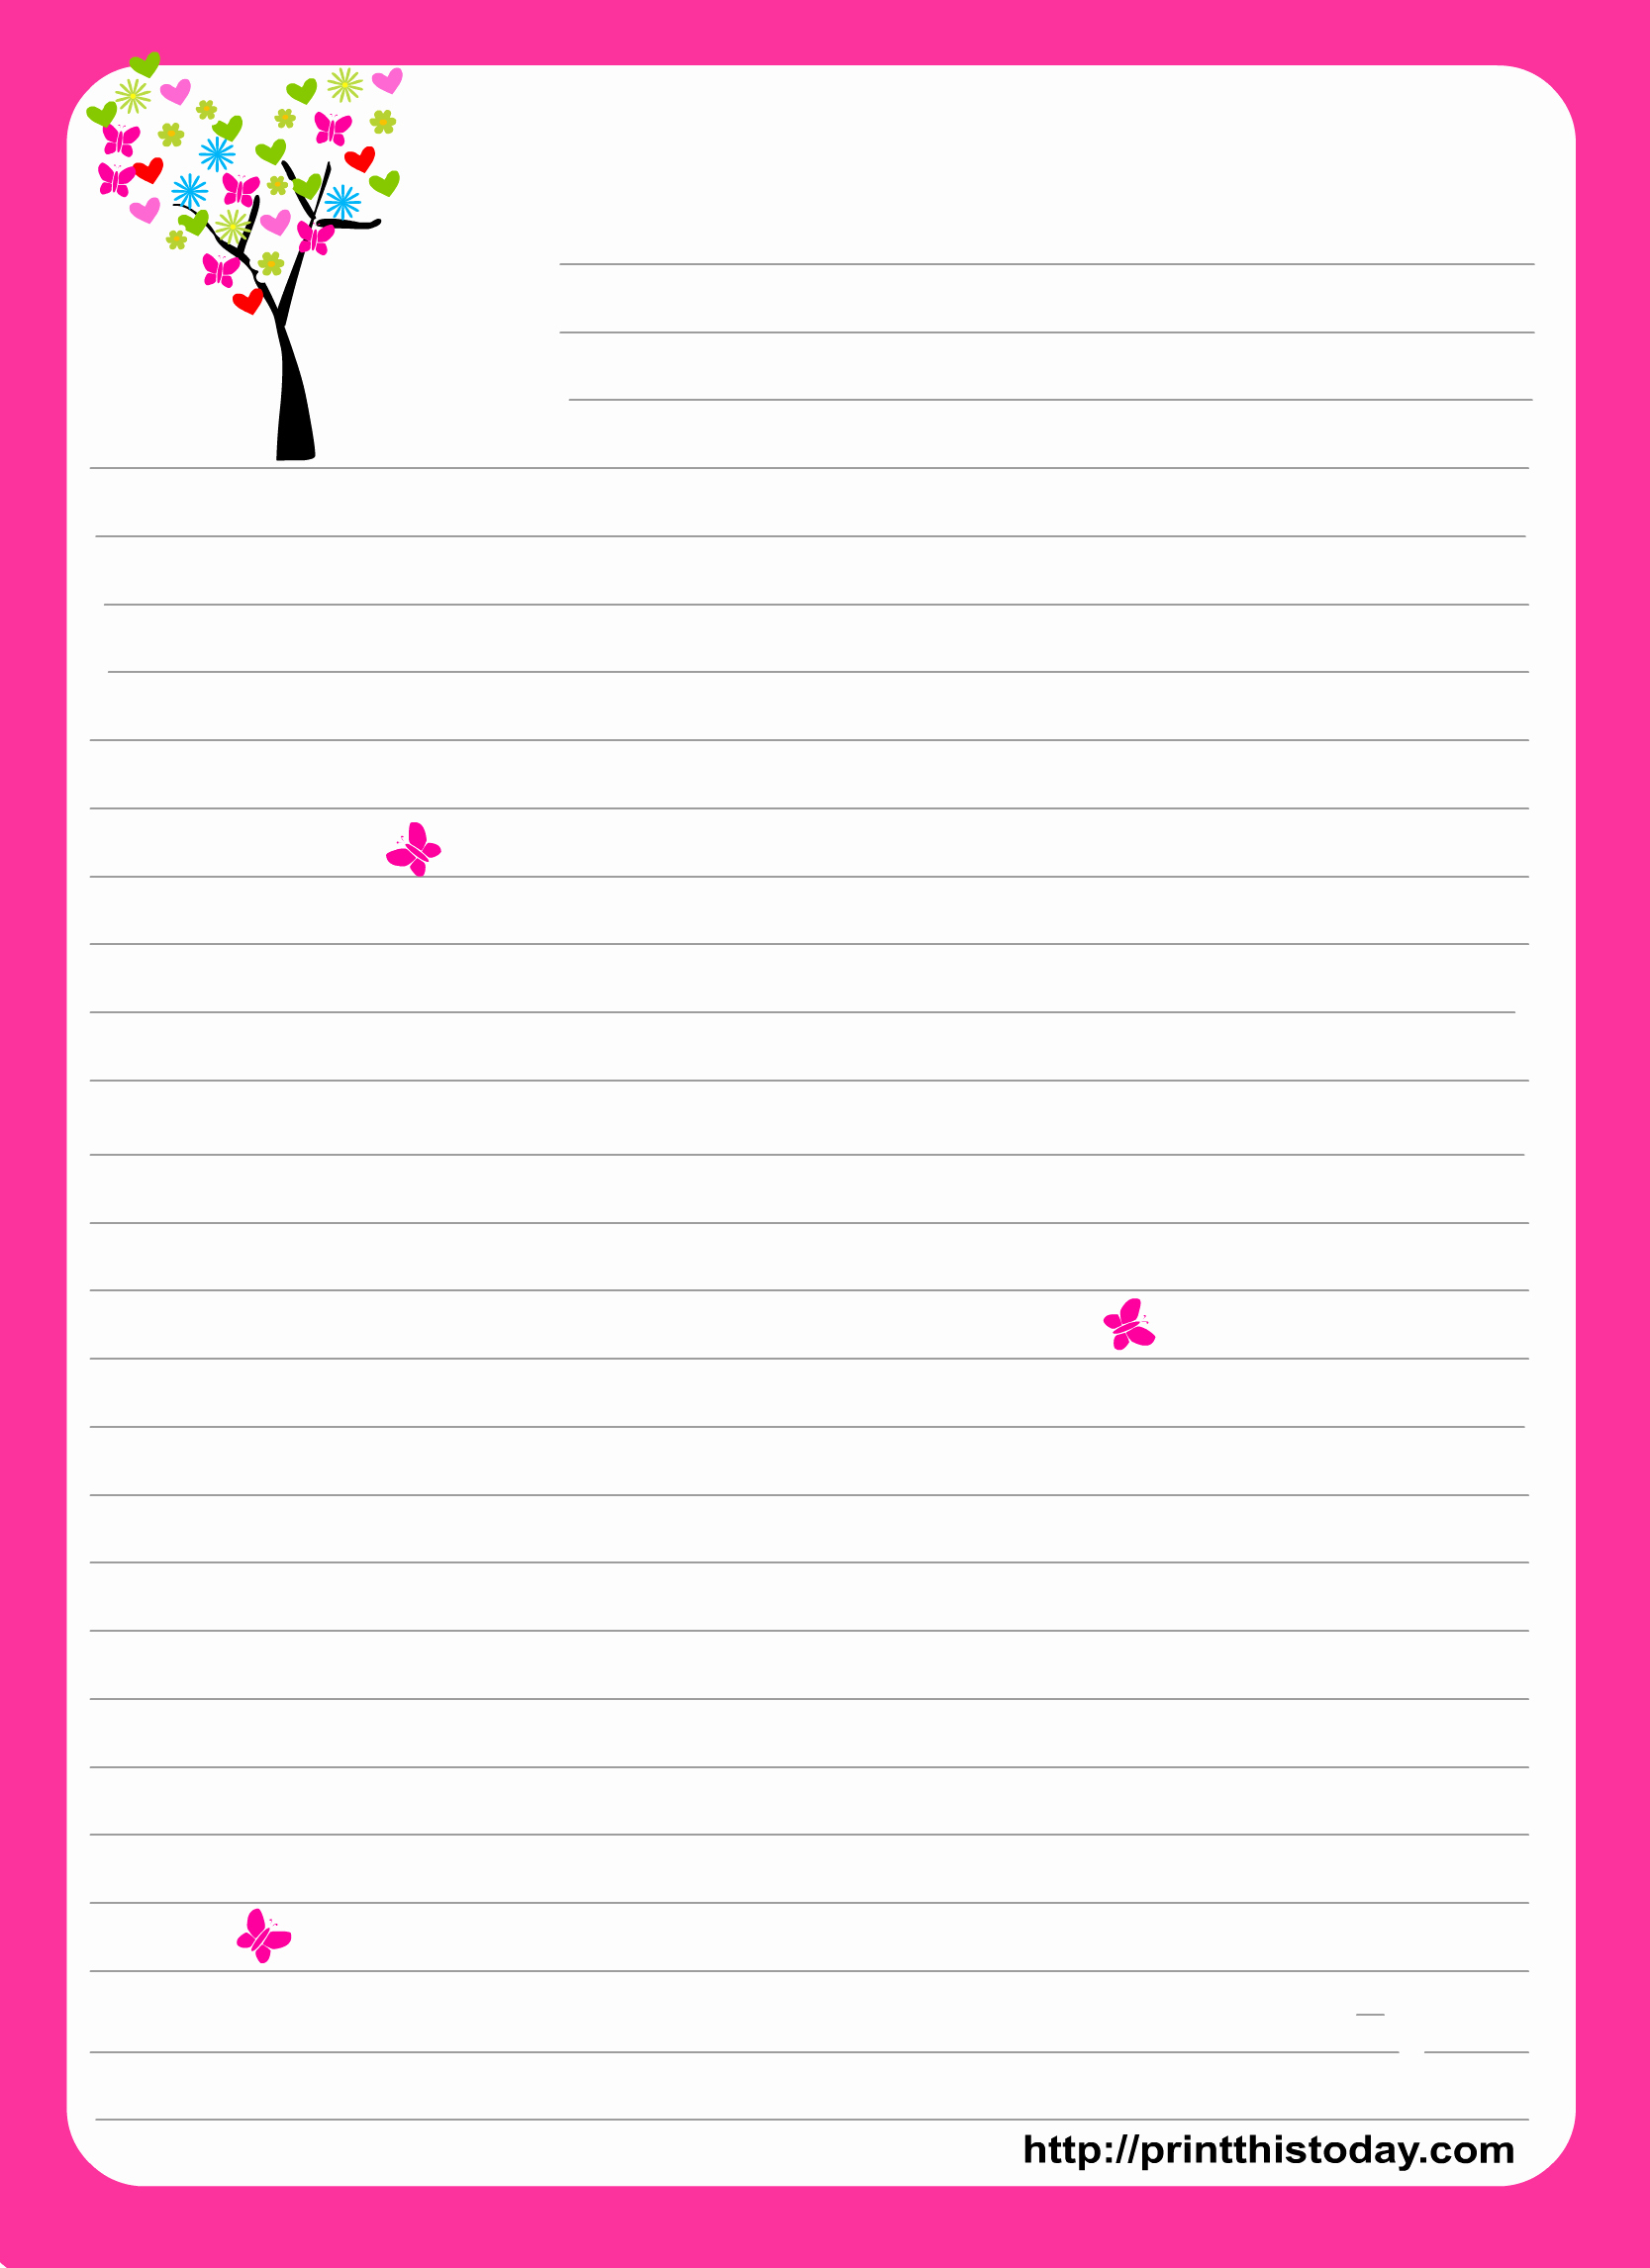 Letterhead And Stationary Free Printable Stationary Printables - Free Printable Stationary